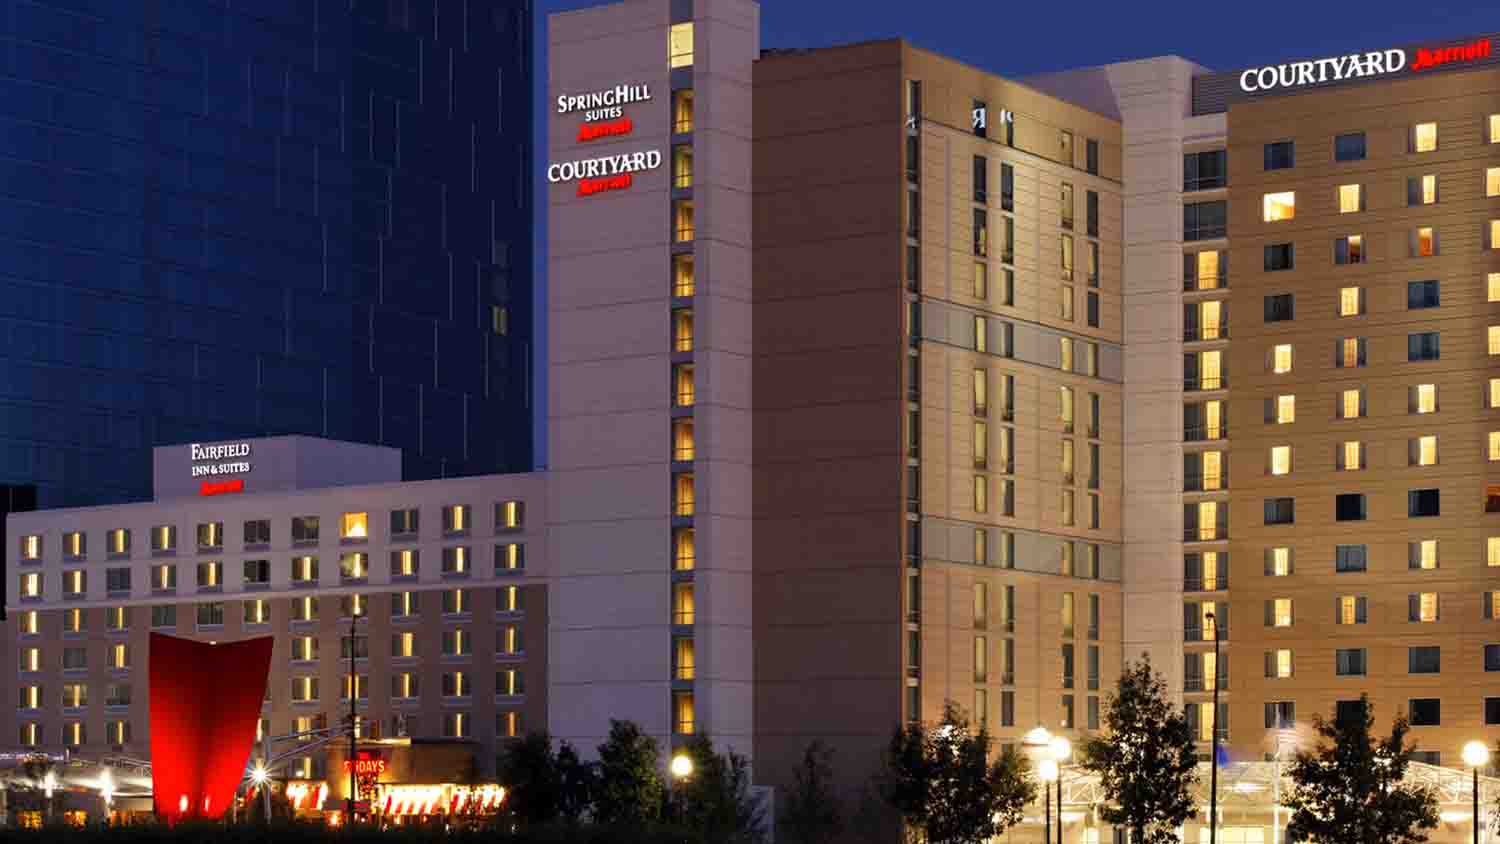 SpringHill Suites by Marriott Downtown Indianapolis 2